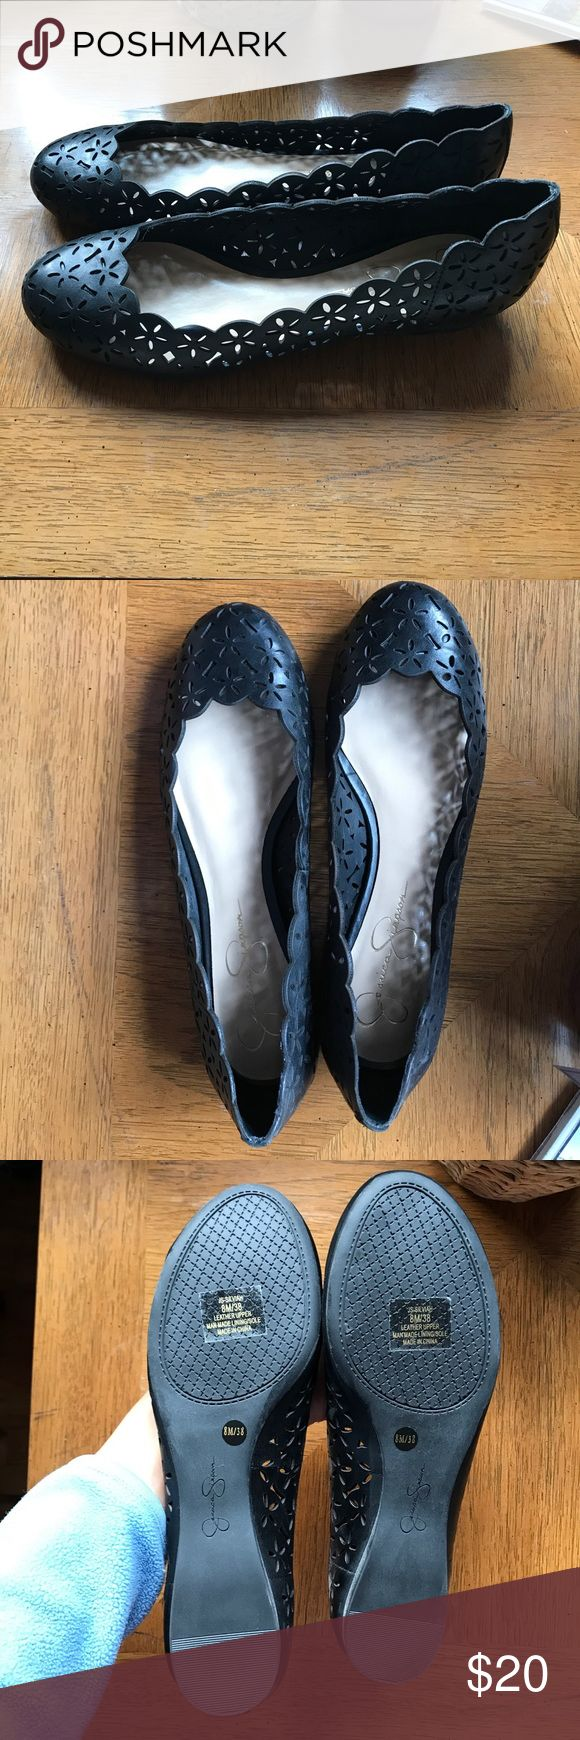 Jessica Simpson ballet flats Brand new, never worn flats. Perfect for a casual day at work. They're so soft and comfortable. You won't get any new shoe blisters. Jessica Simpson Shoes Flats & Loafers